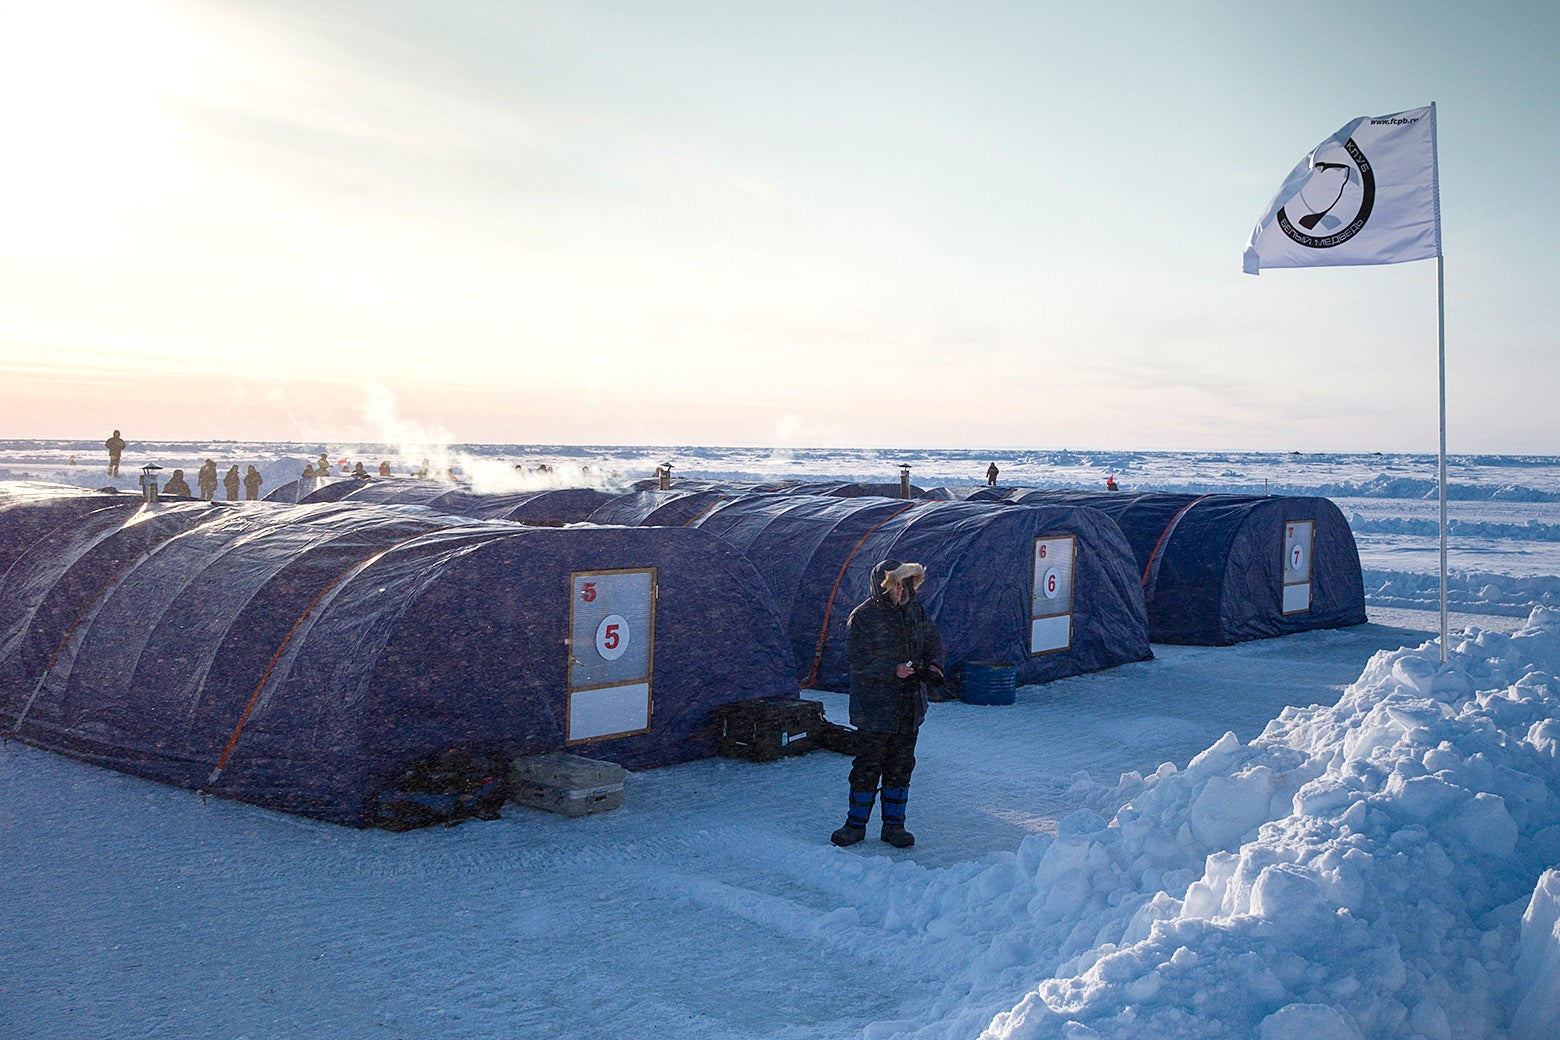 A Barneo expedition ice camp in 2016.